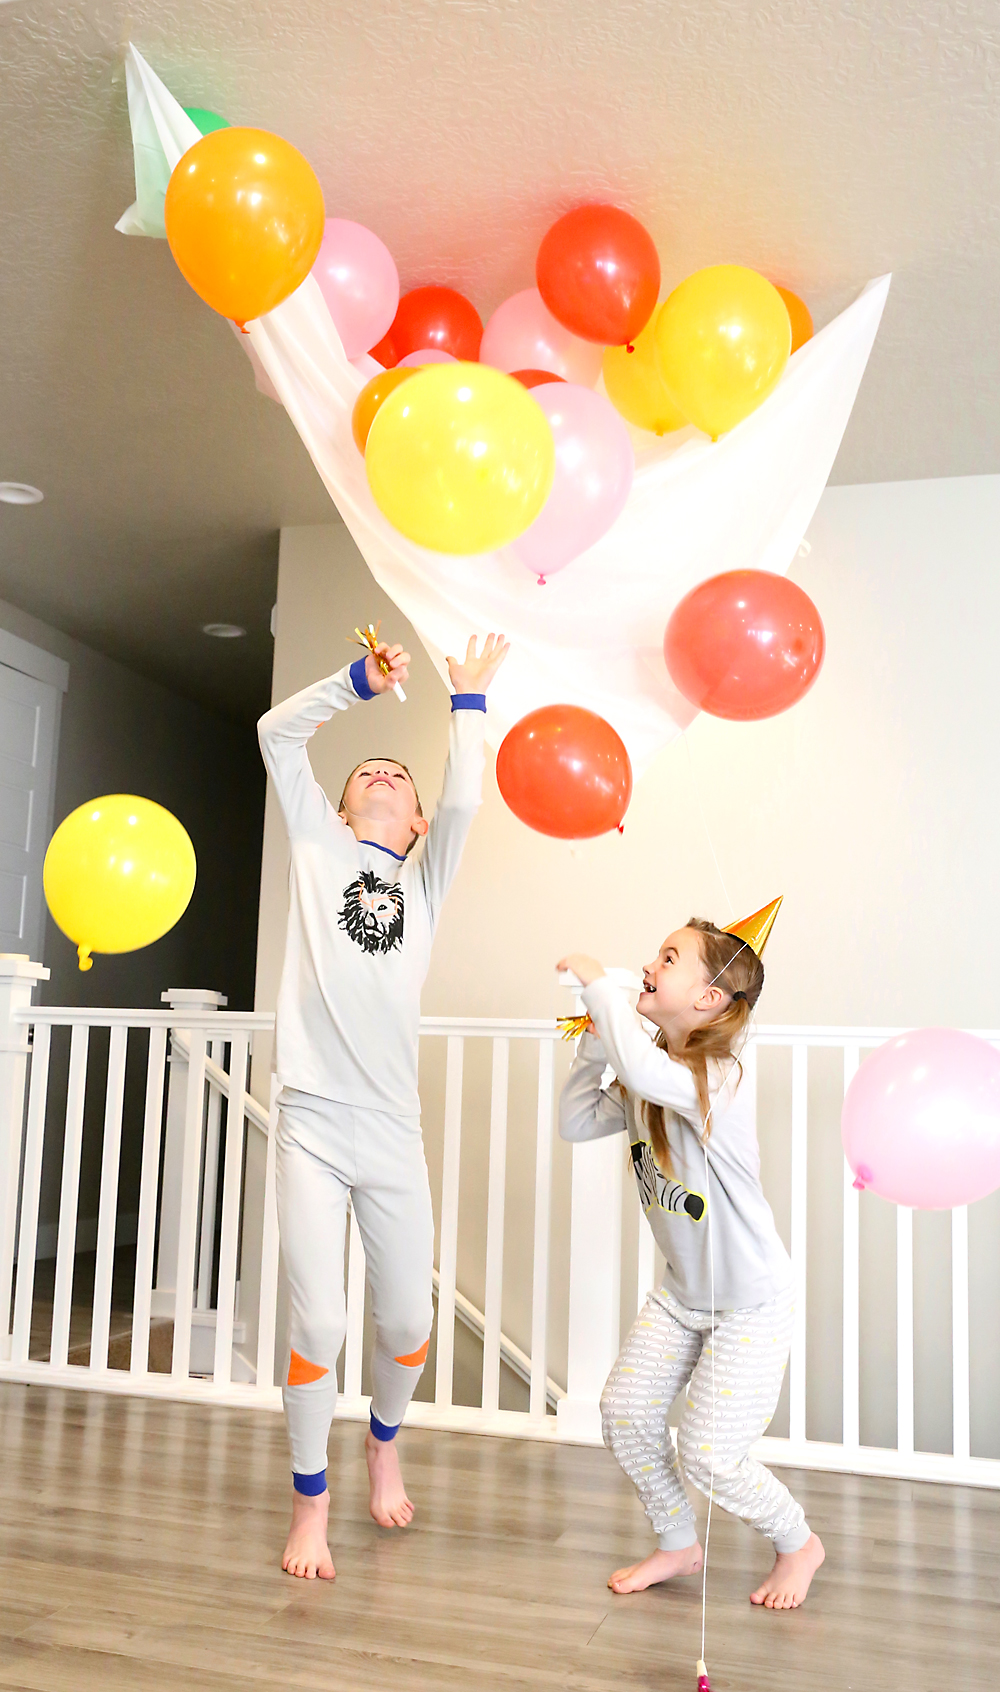 Kids playing with the balloon drop